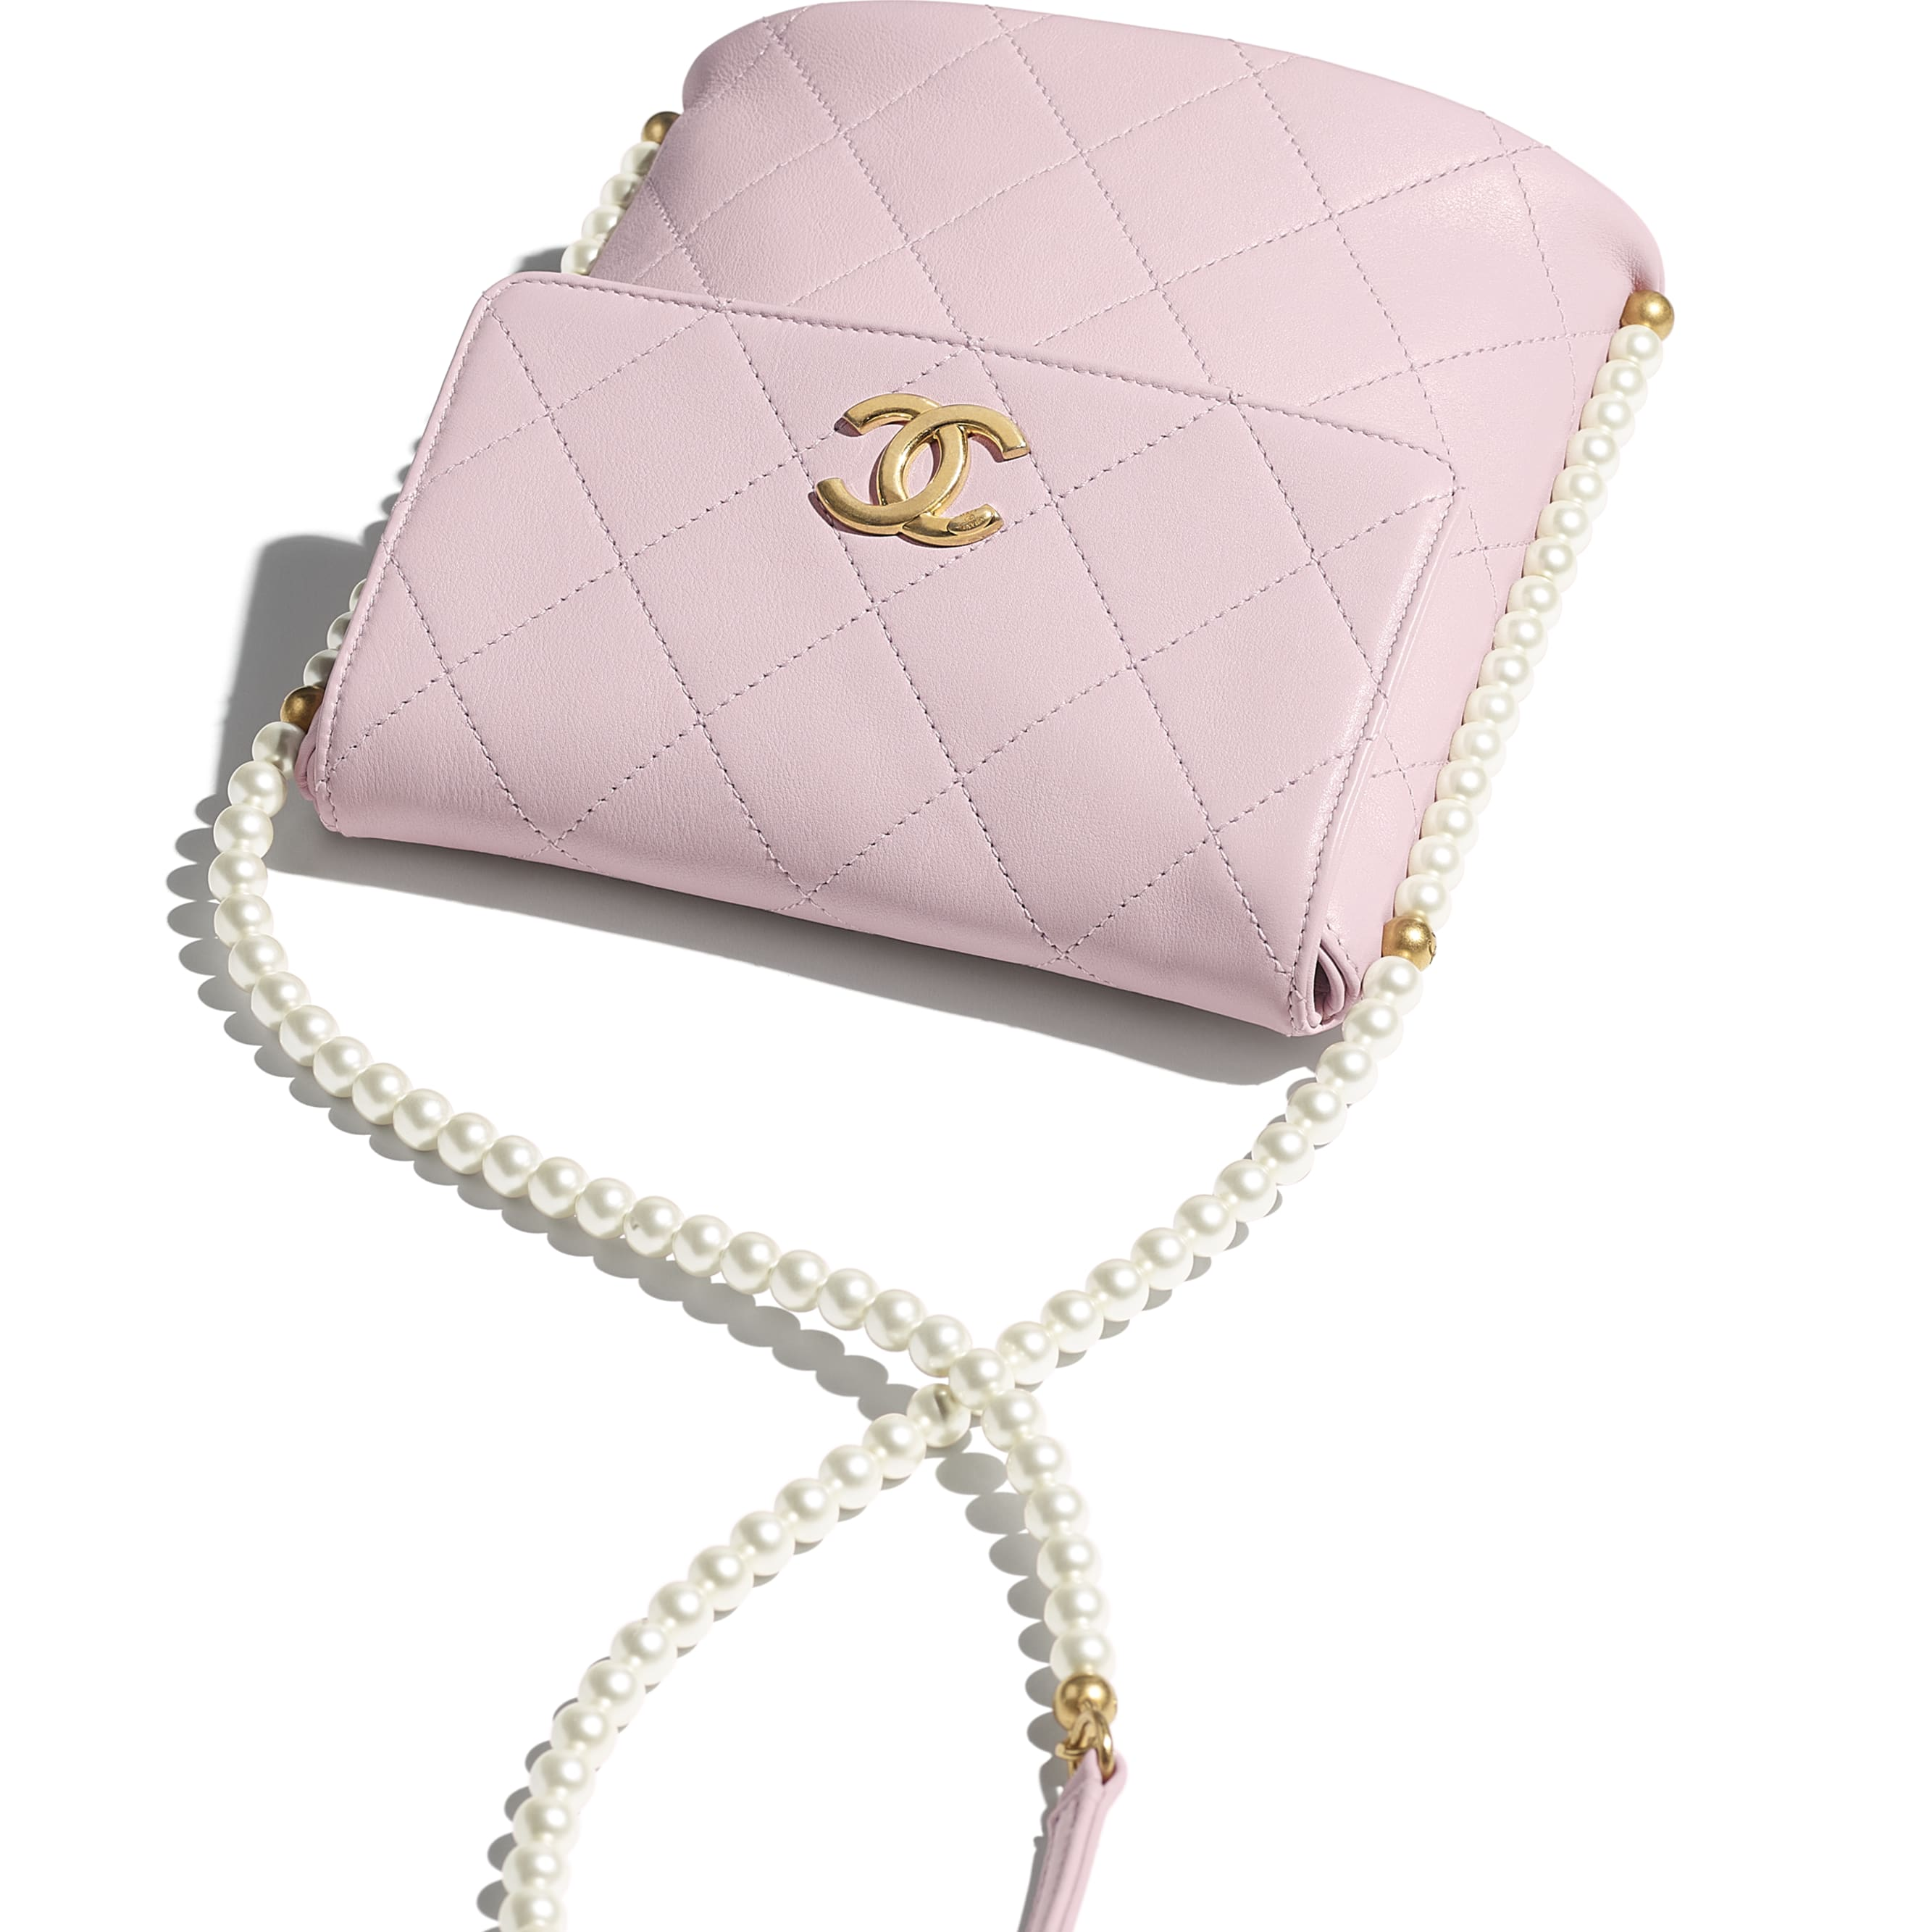 Small Hobo Bag - Light Pink - Calfskin, Imitation Pearls & Gold-Tone Metal - CHANEL - Extra view - see standard sized version